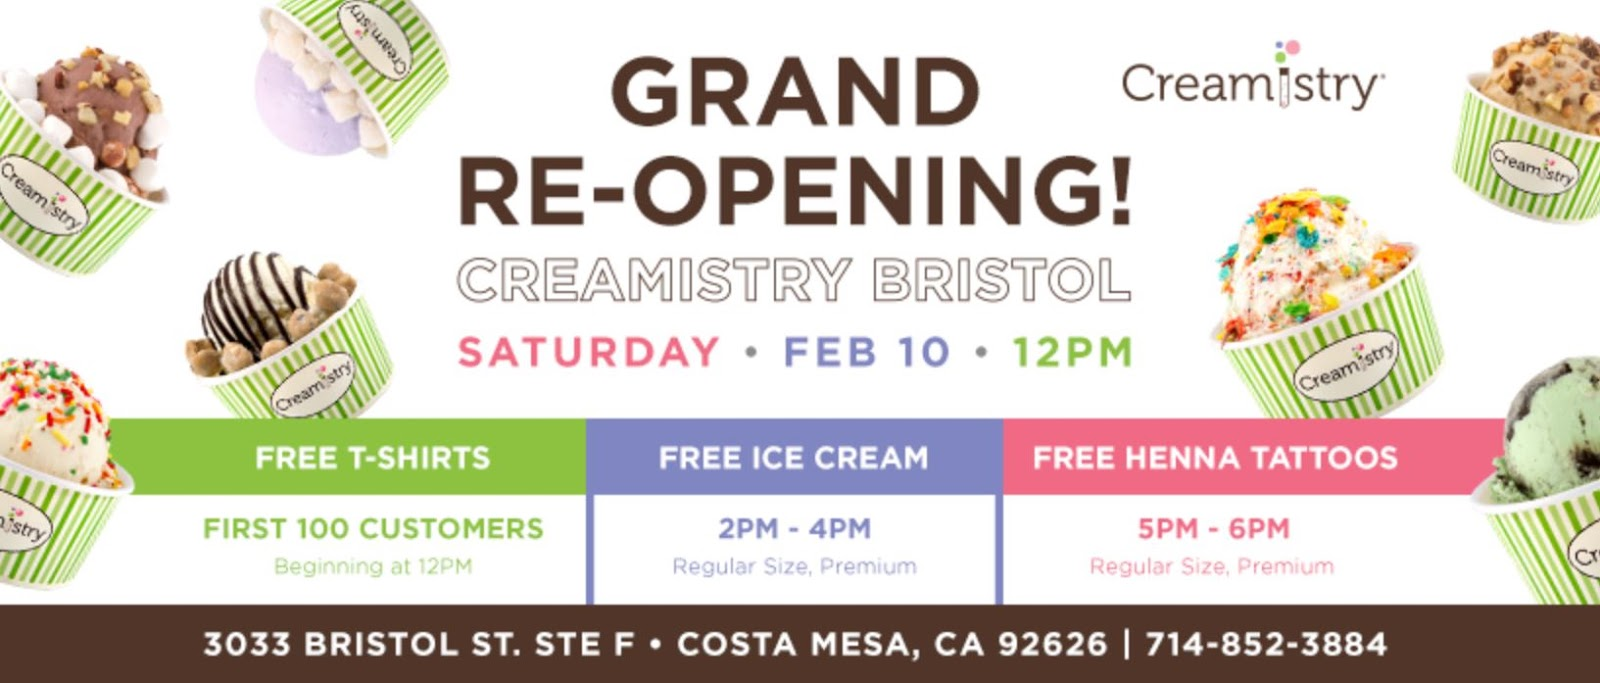 Feb 10   Creamistry Grand Re-Opens in Costa Mesa - Offers Free Ice Cream